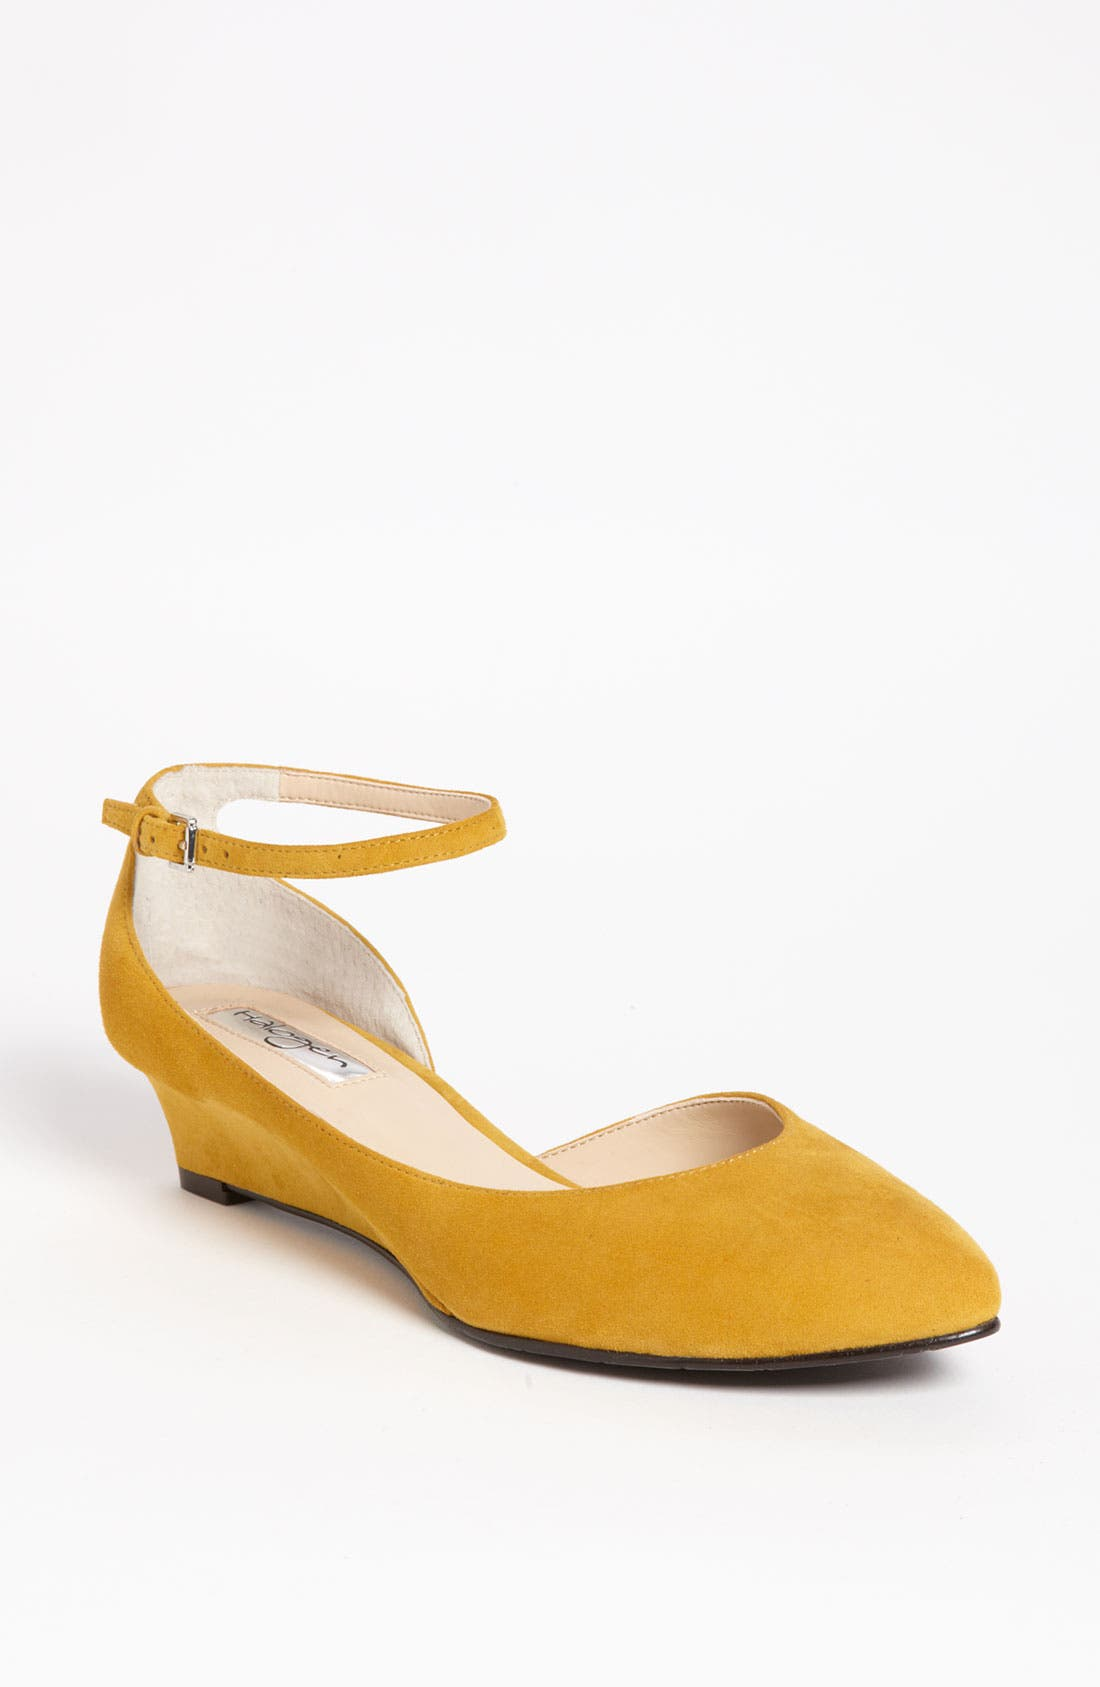 Main Image - HALOGEN BIANCA ANKLE STRAP LOW WEDGE